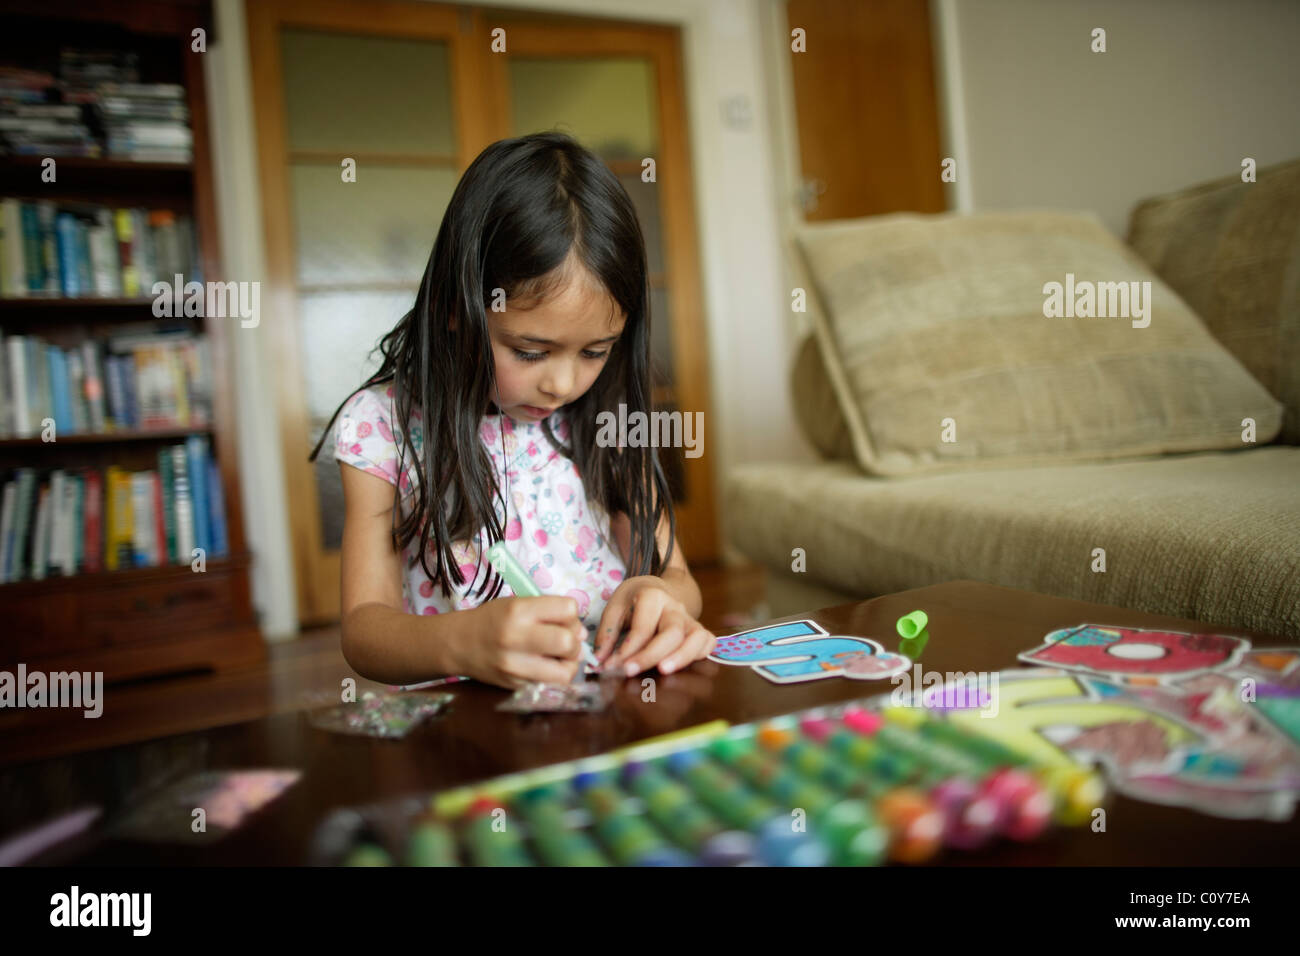 Six year old girl works on craft set of large letters to colour in and decorate - Stock Image